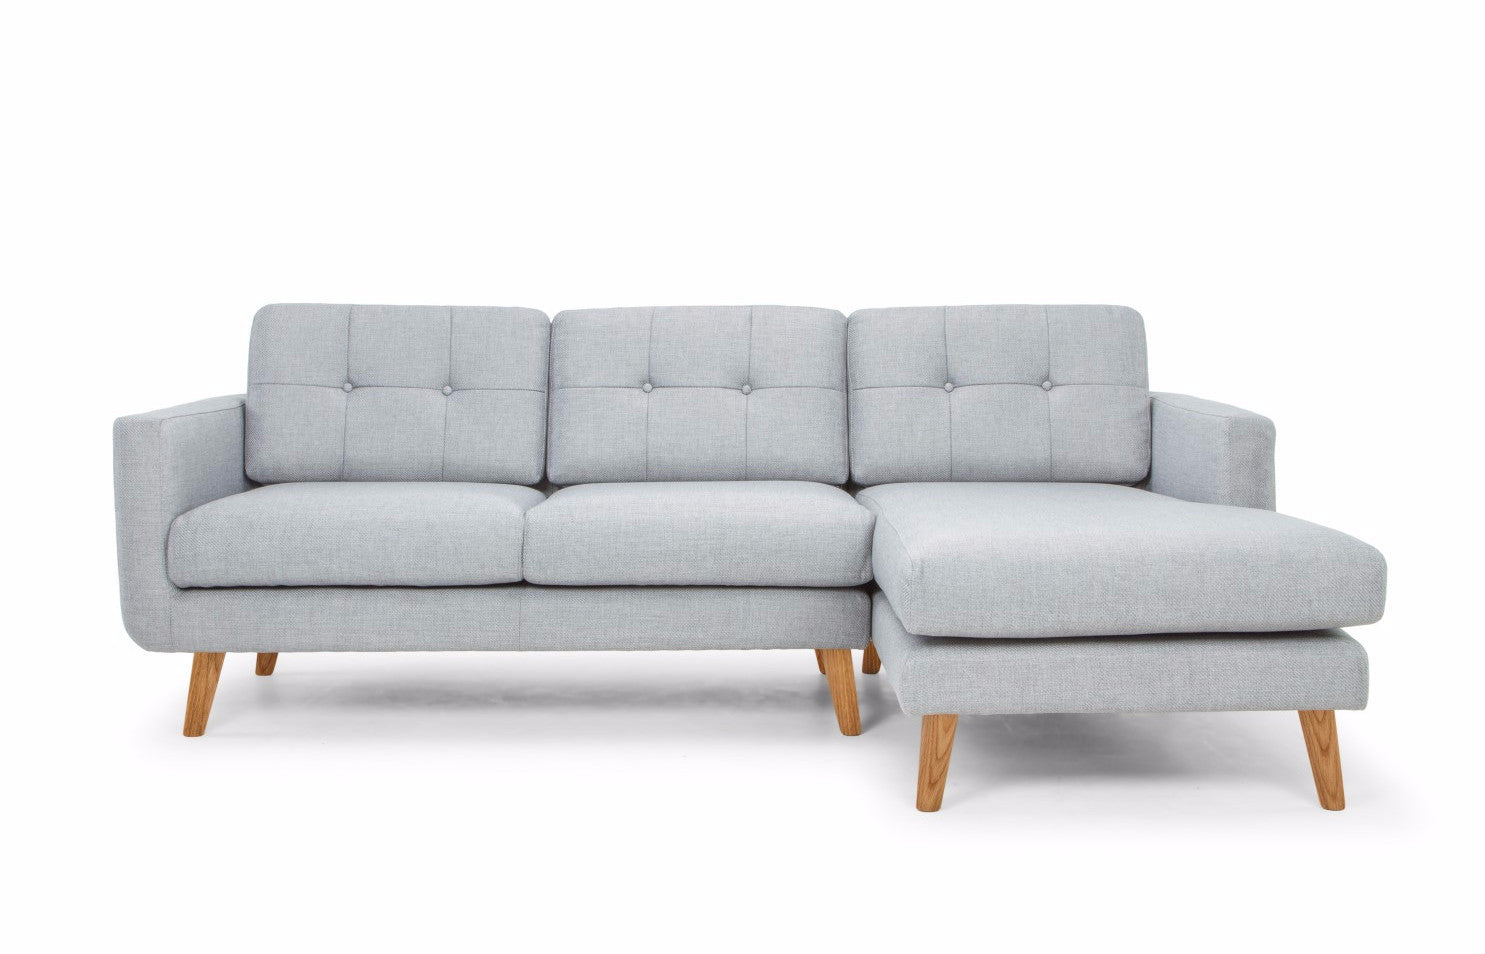 Great ... Aspen Sectional Sofa   Right   Sofa   Furniture Maison.